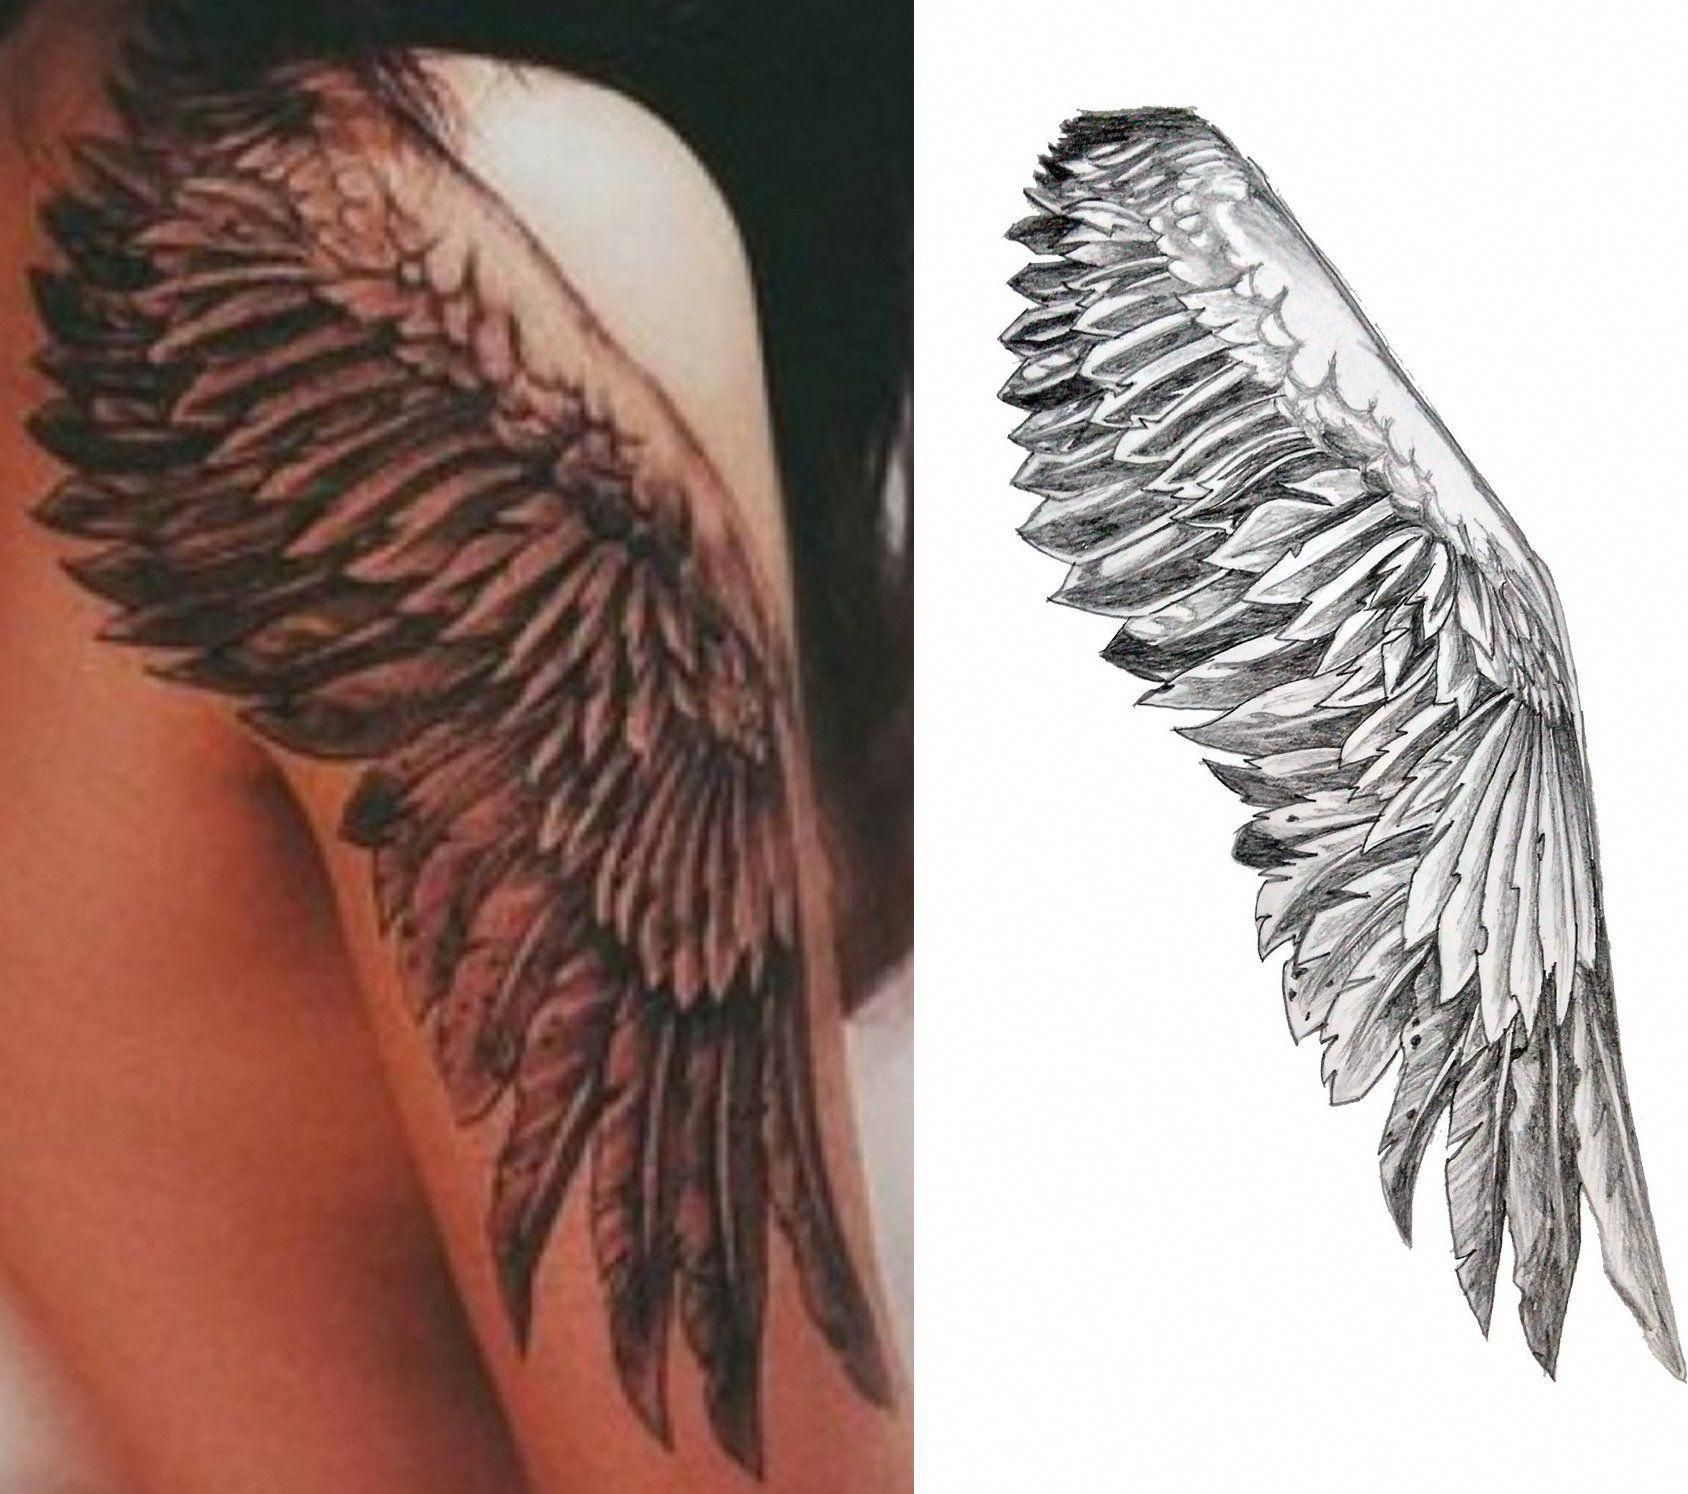 Wings Temporary Tattoo Cosplay Tattoos for guys, Wing